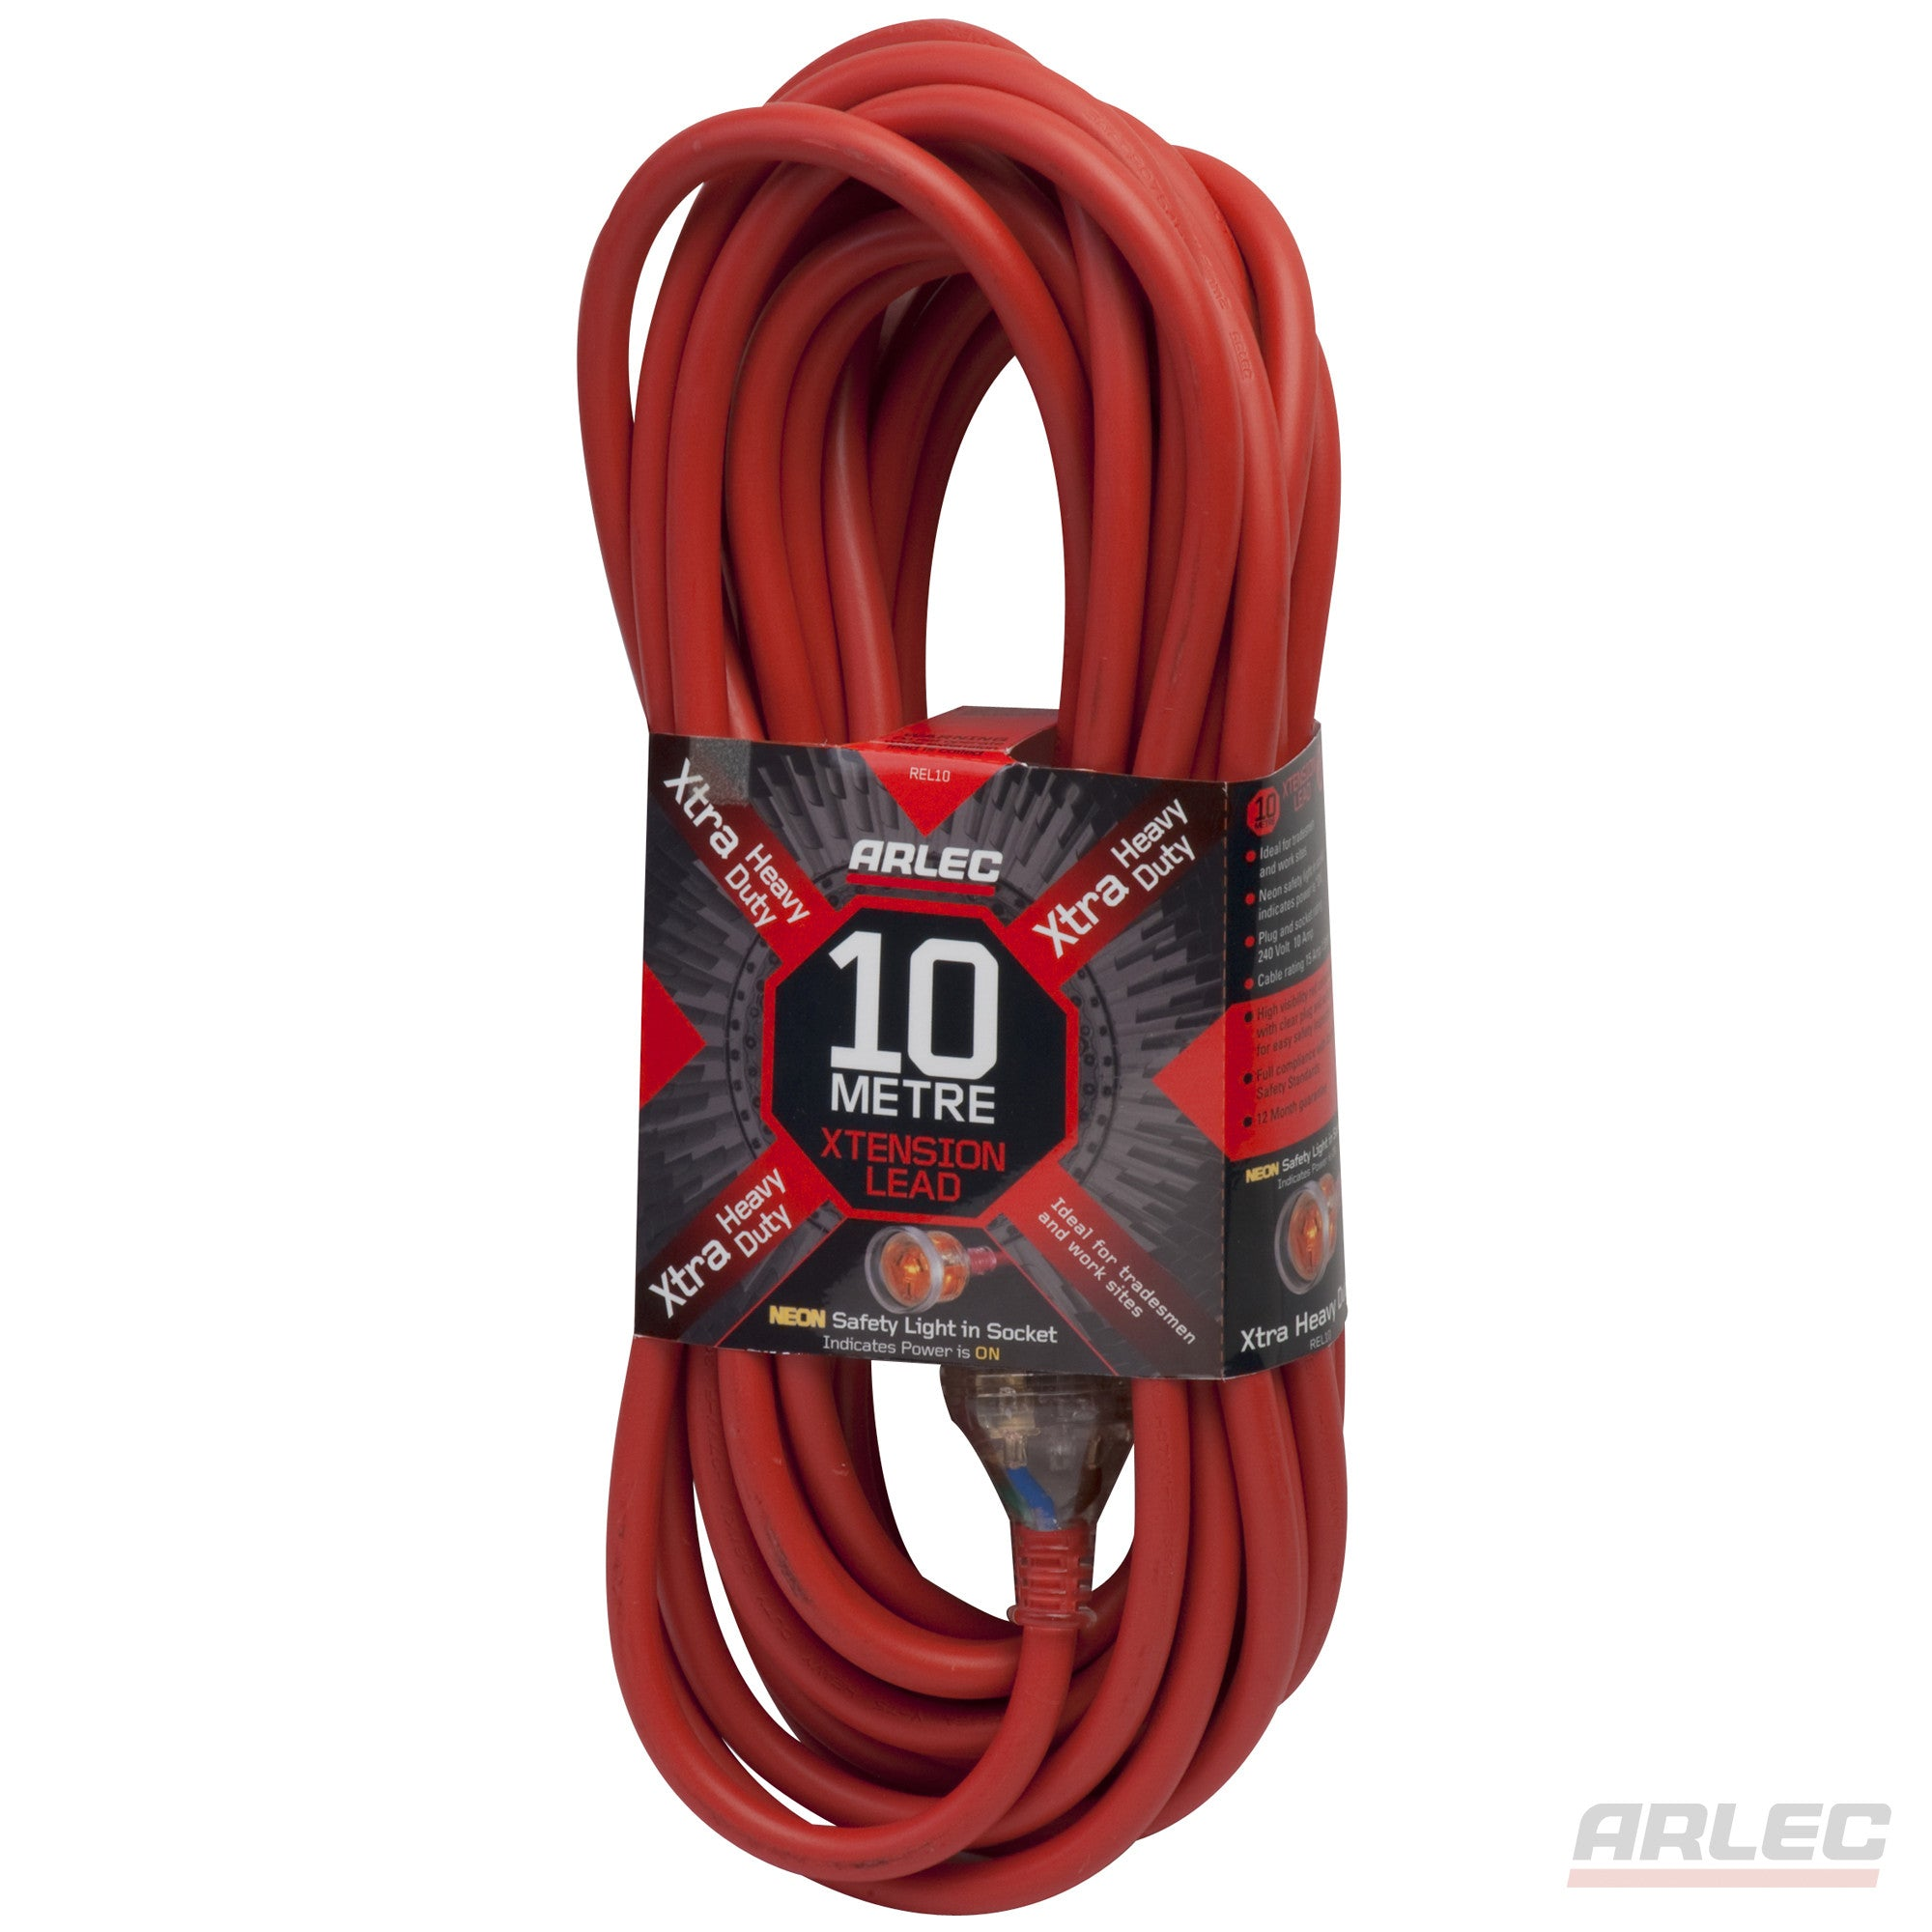 Arlec ARLEC Extra Heavy Duty - 10 Meter Extension Lead - REL10 - BNR Industrial